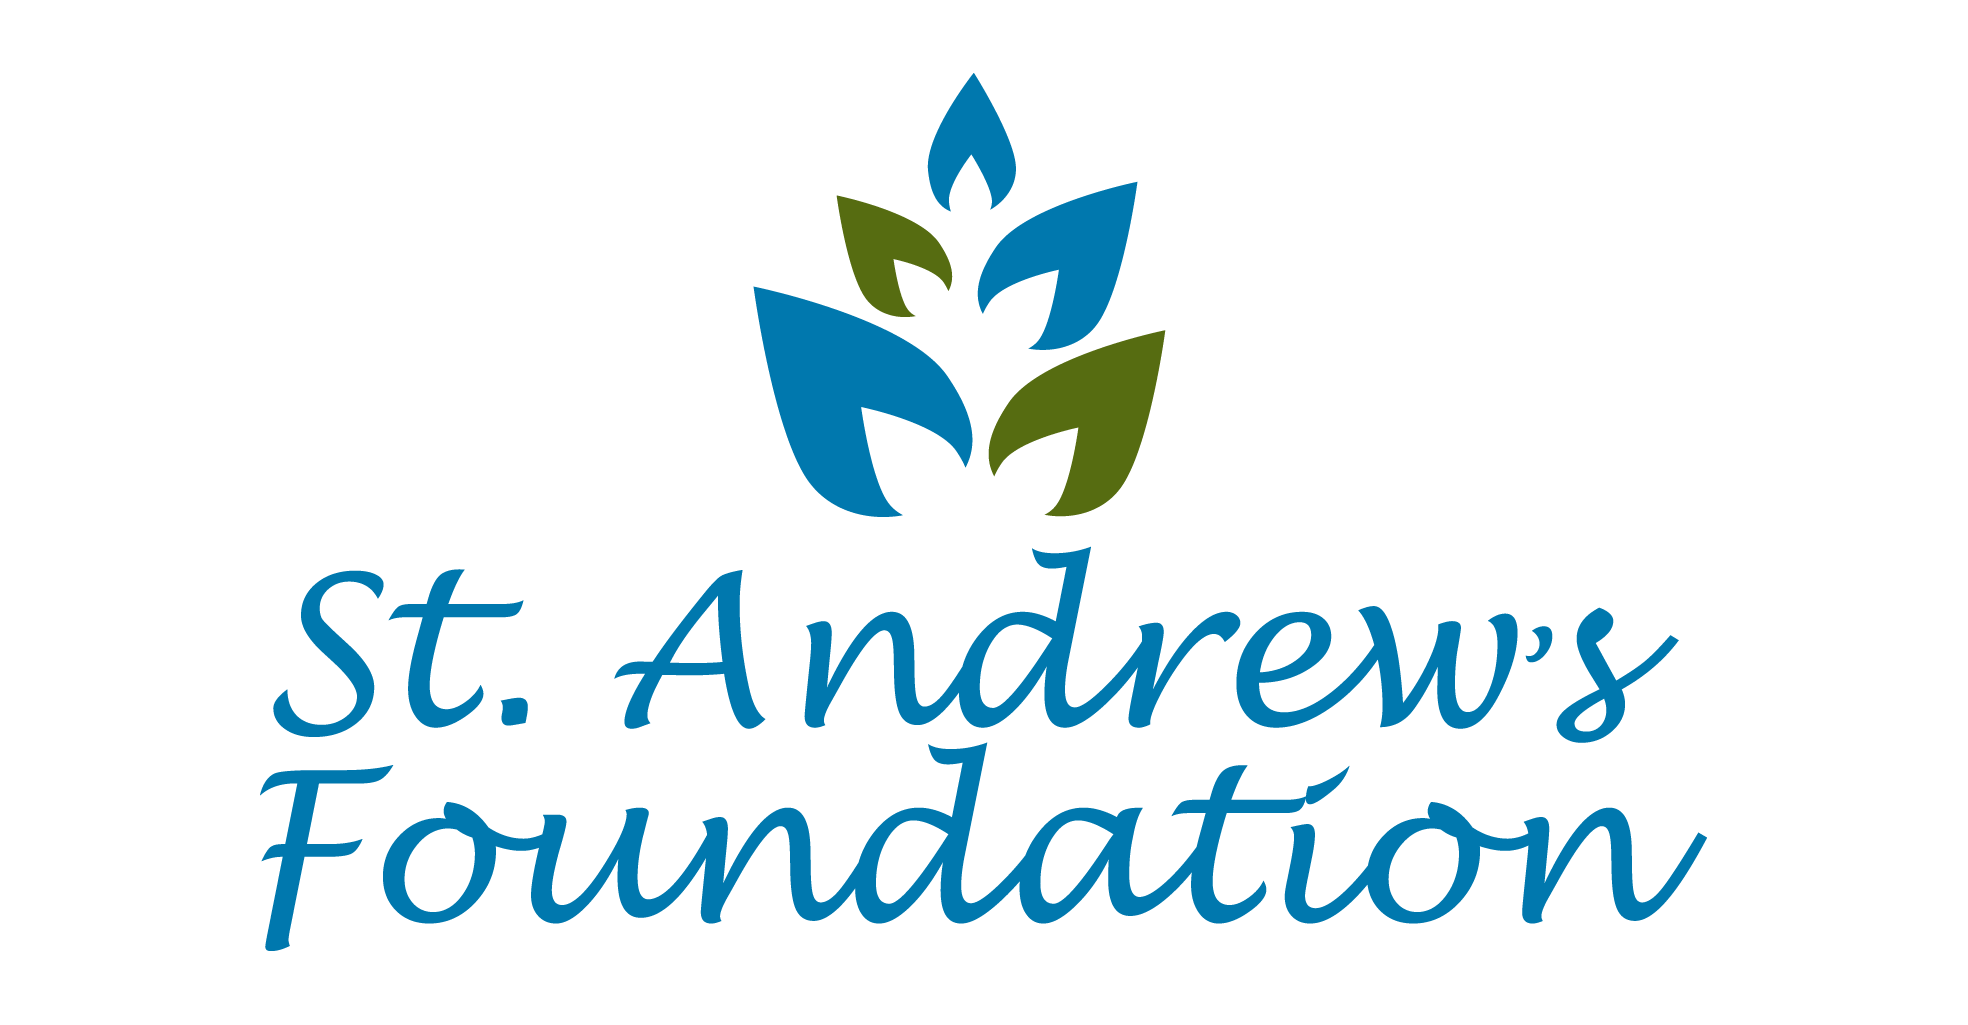 St. Andrew's Foundation